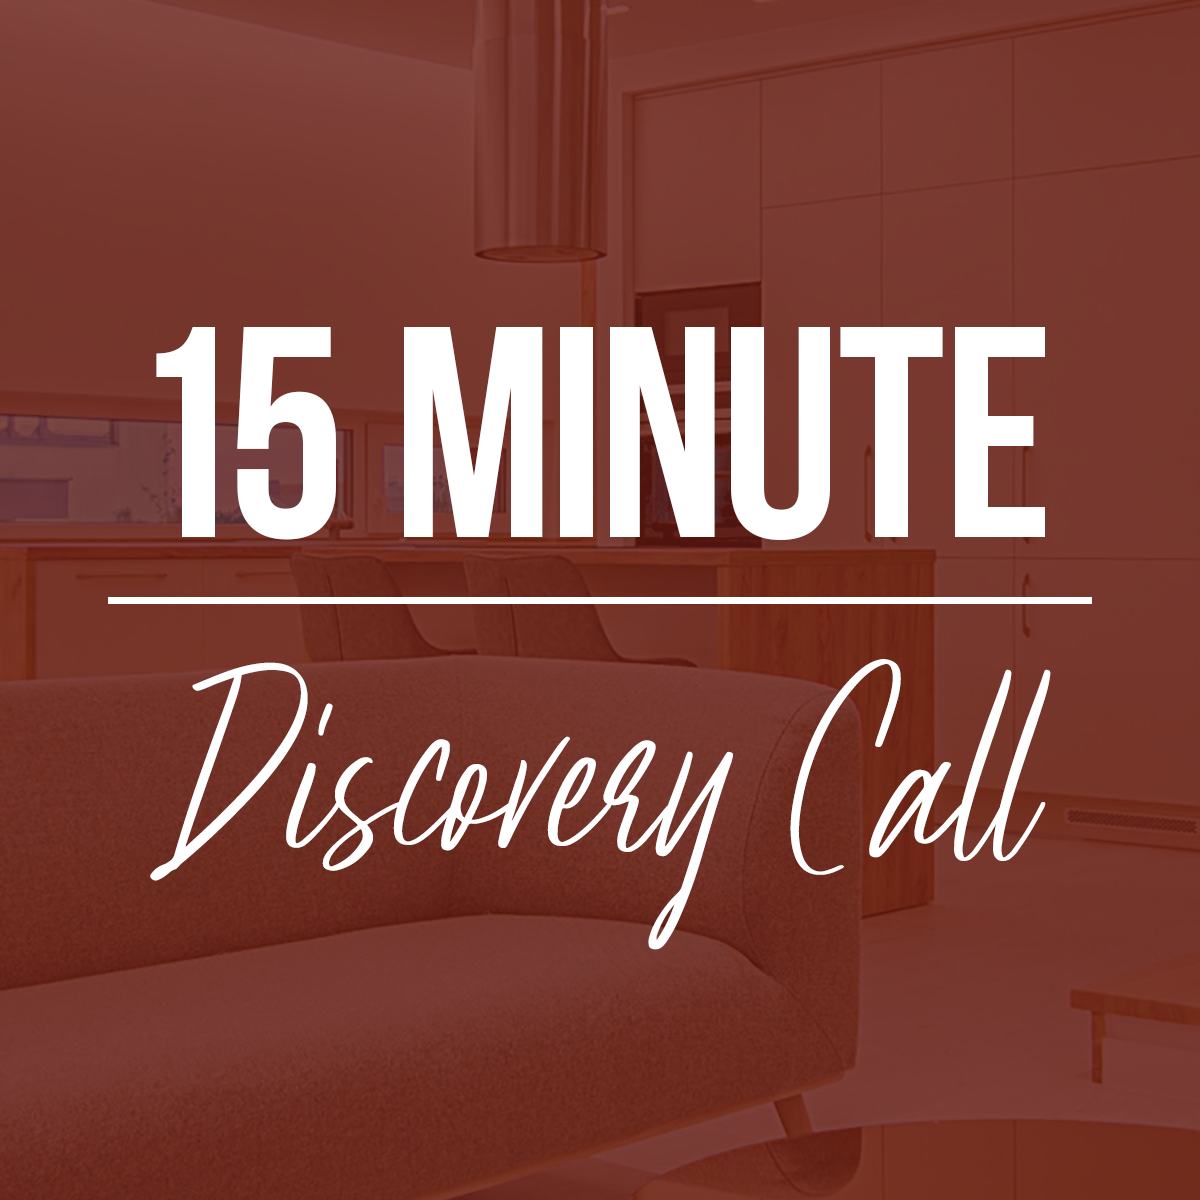 15 Minute Discovery Call